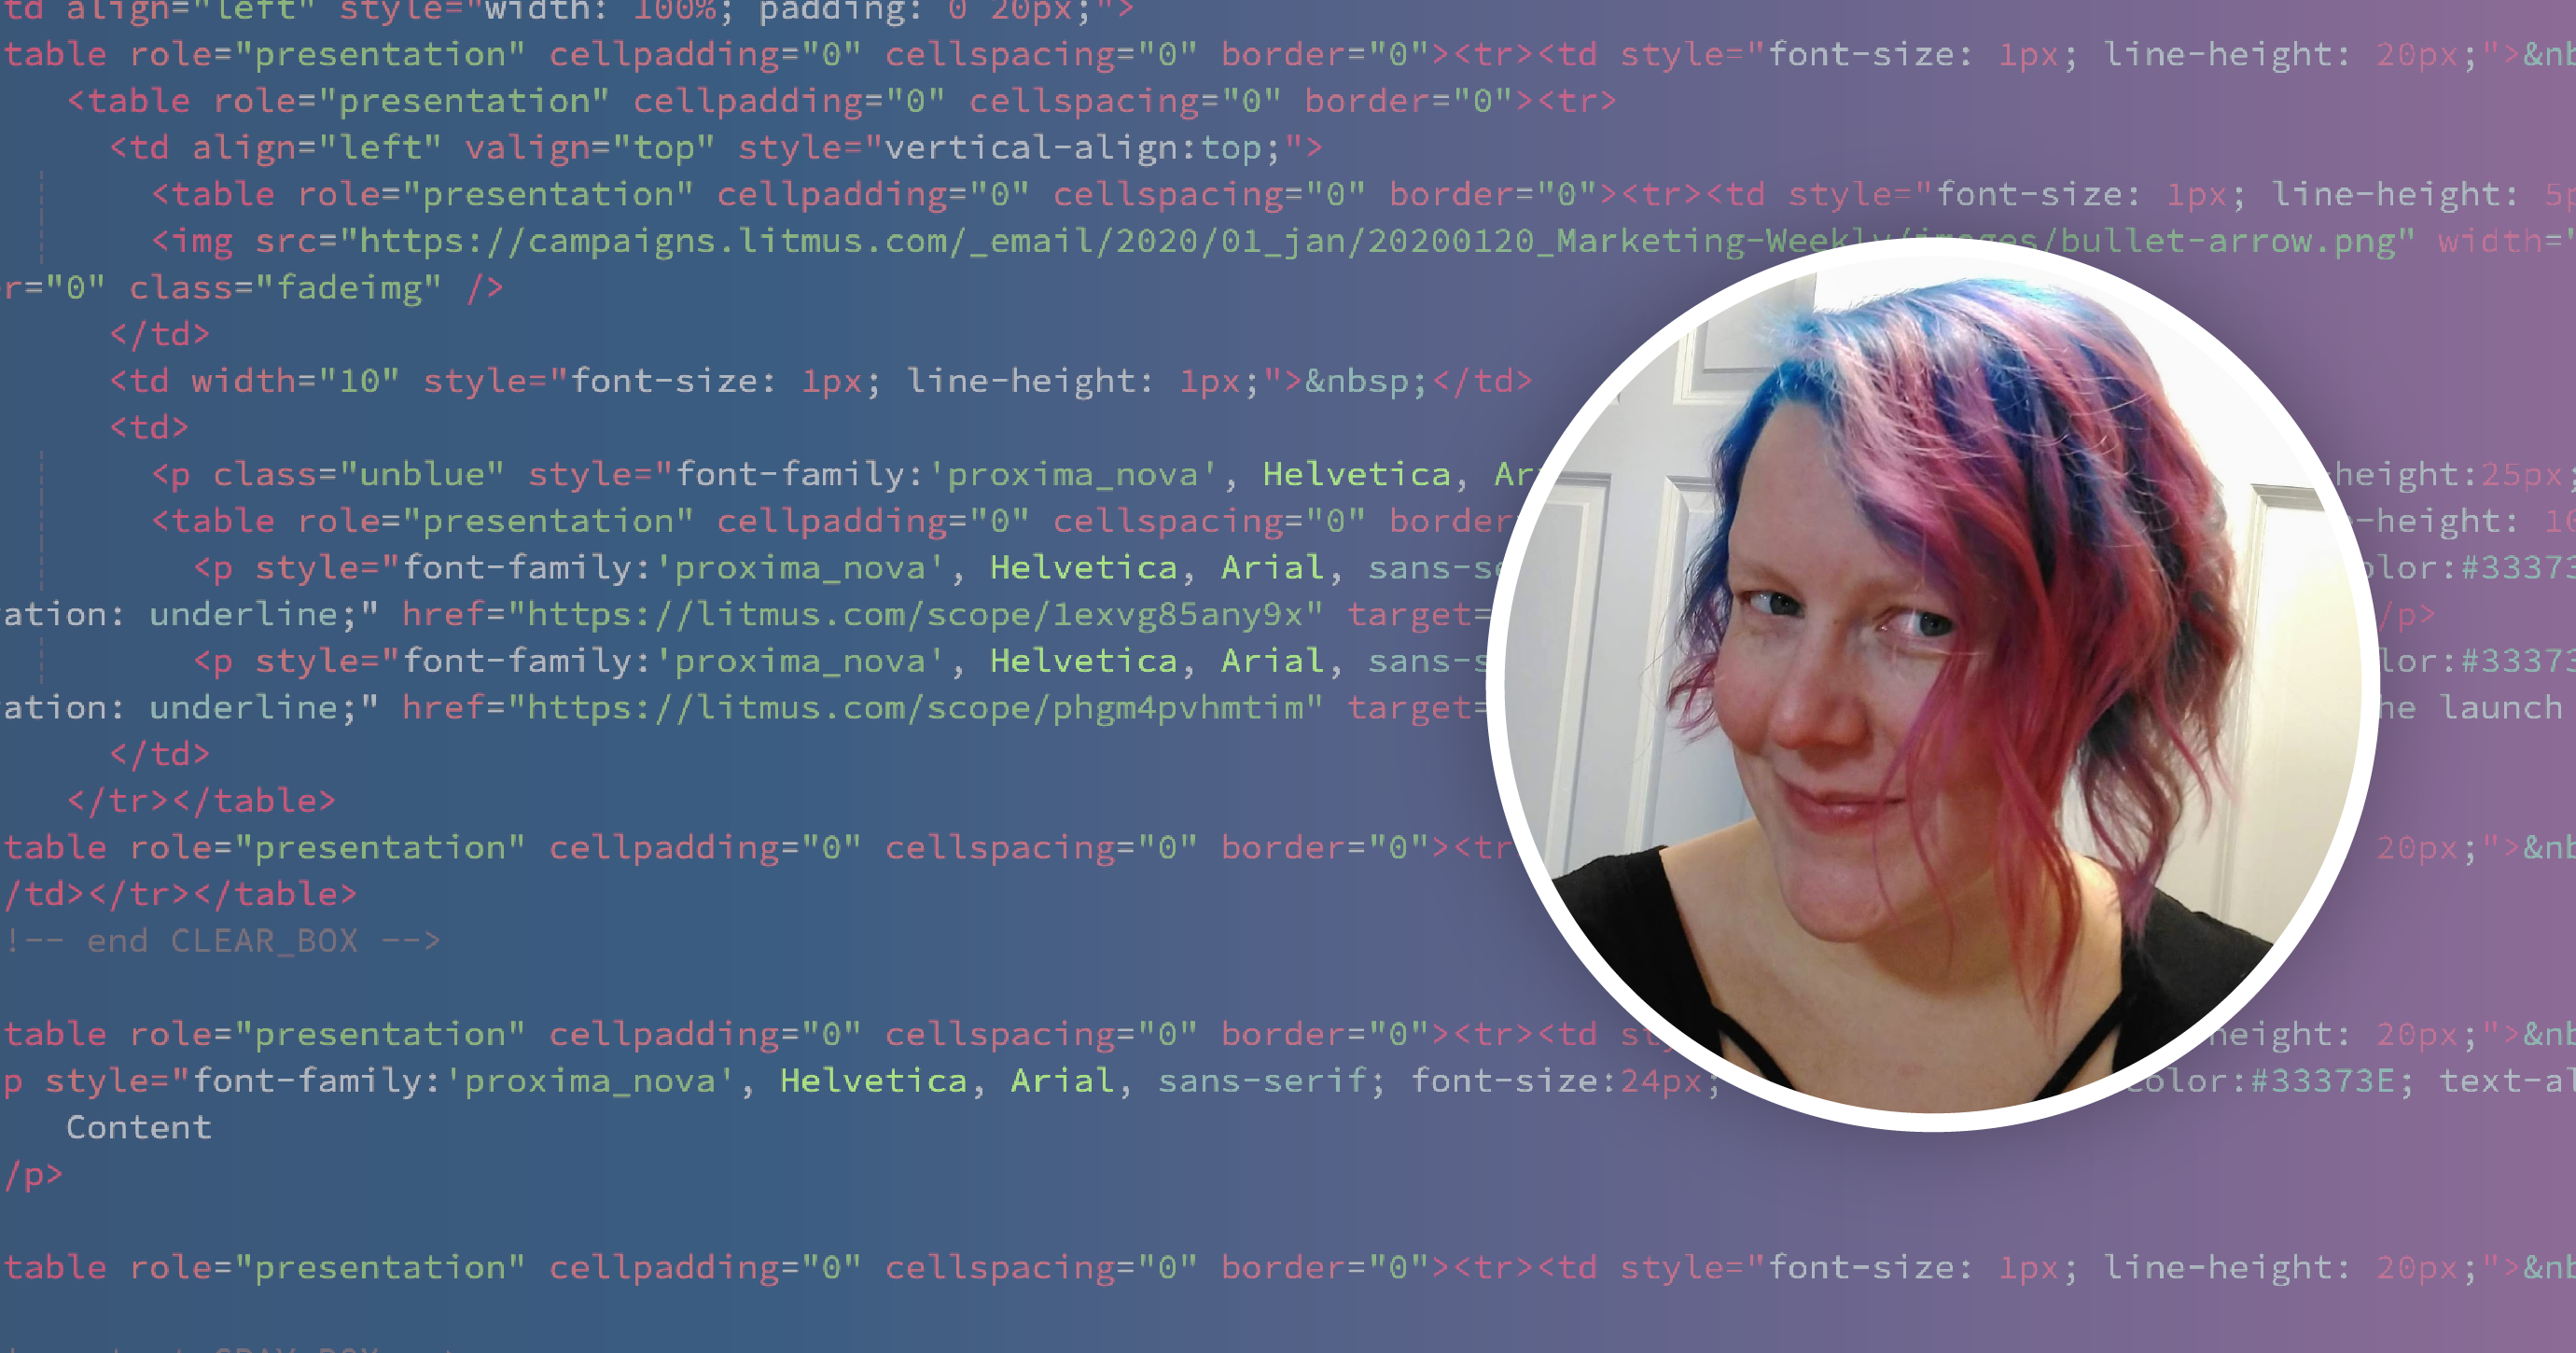 Carin Slater coding emails with Litmus Builder